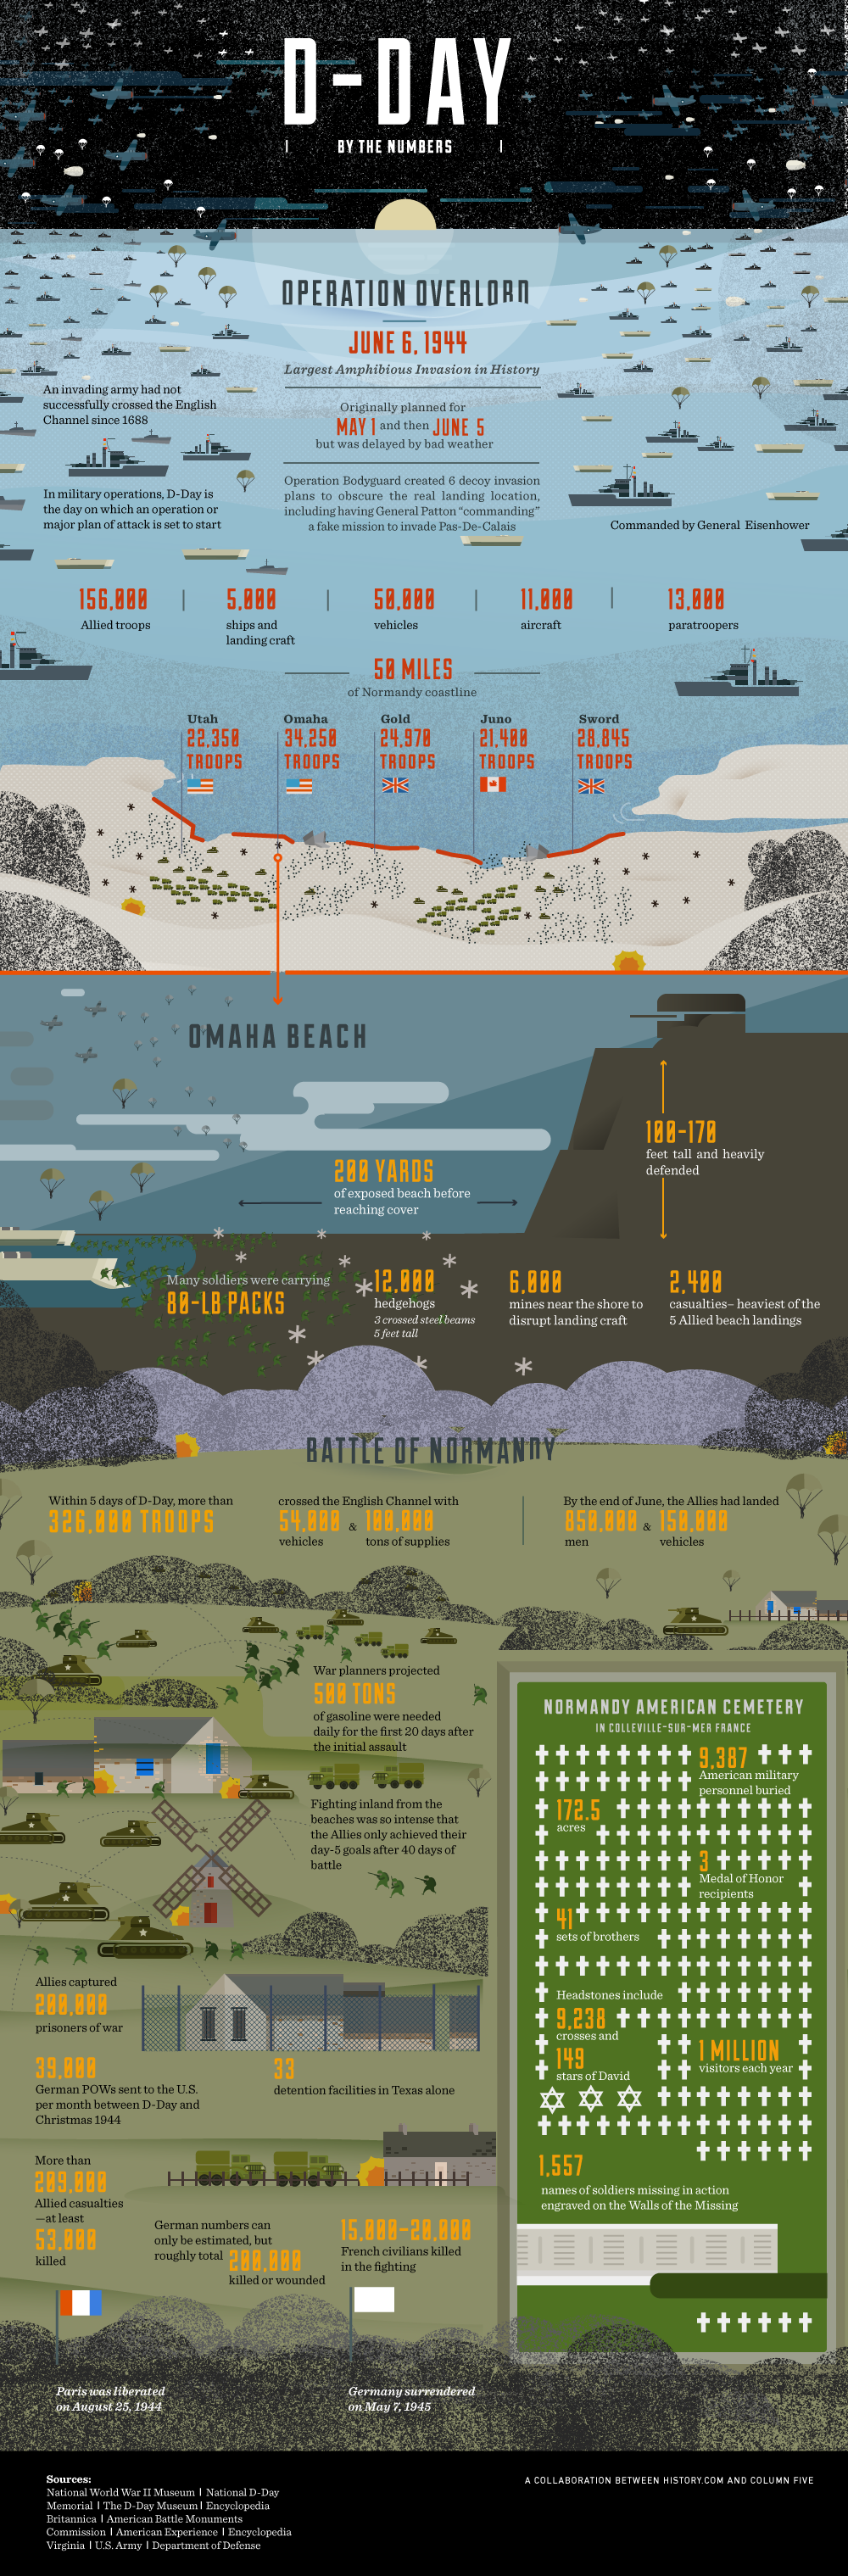 D-Day by the Numbers